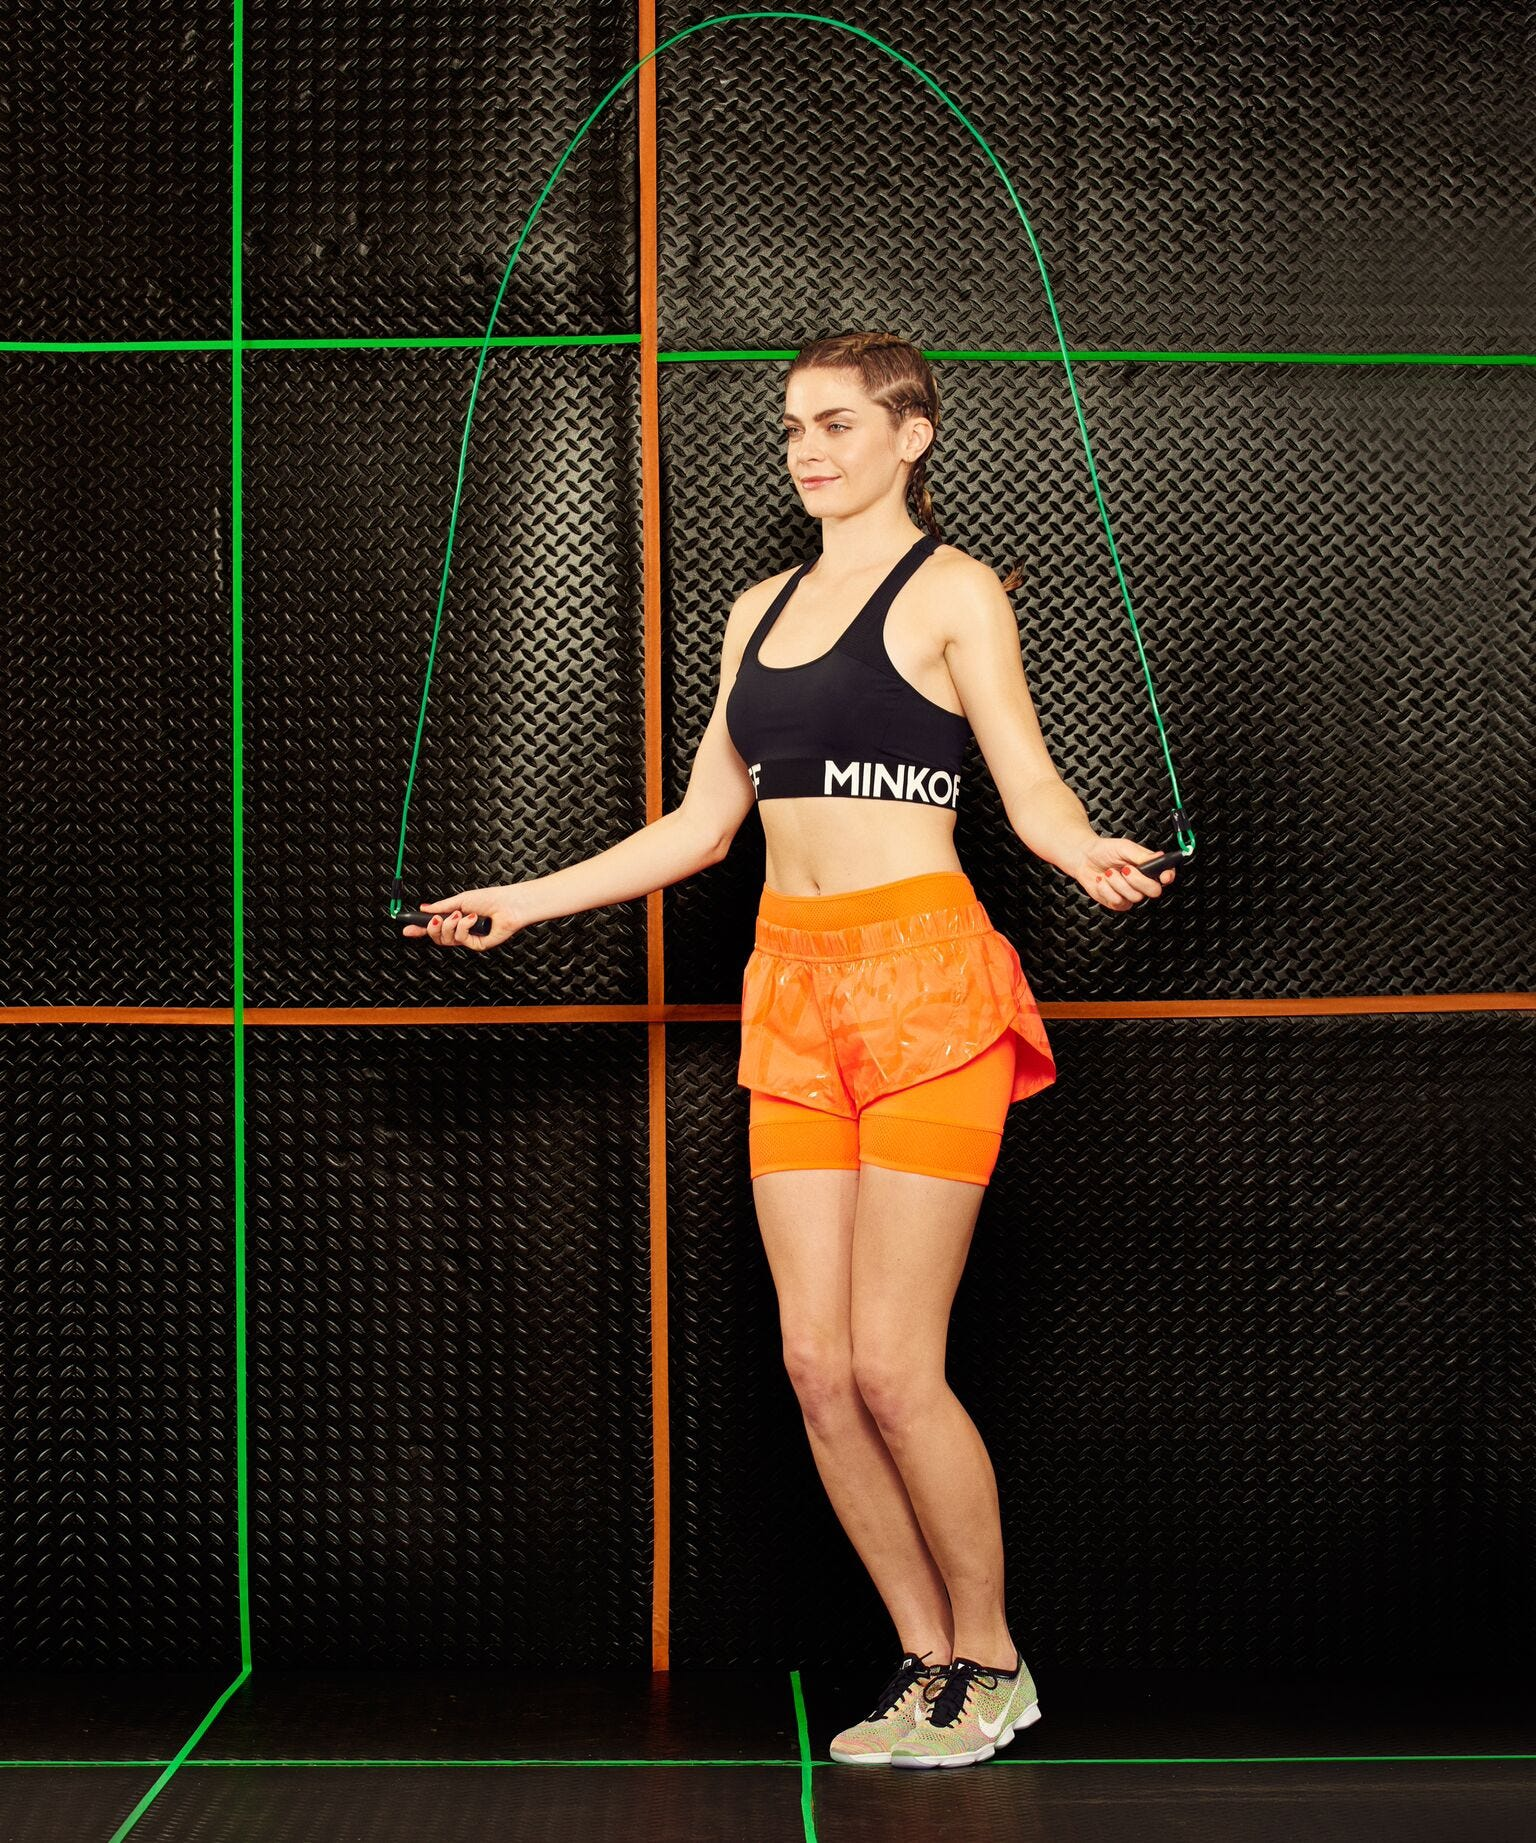 Jump rope video bunching breasts